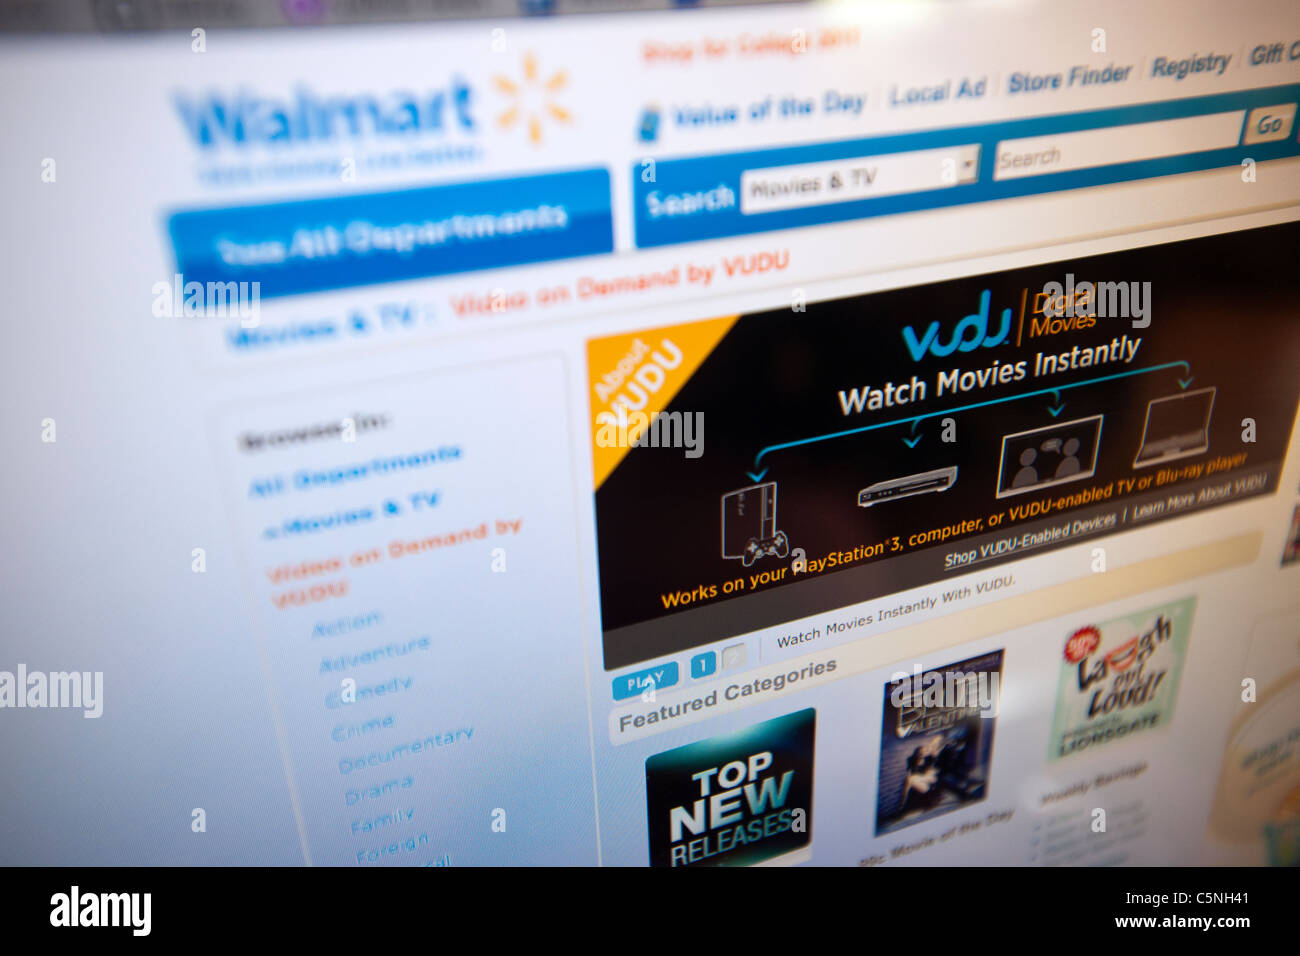 Vudu Stock Photos & Vudu Stock Images - Alamy